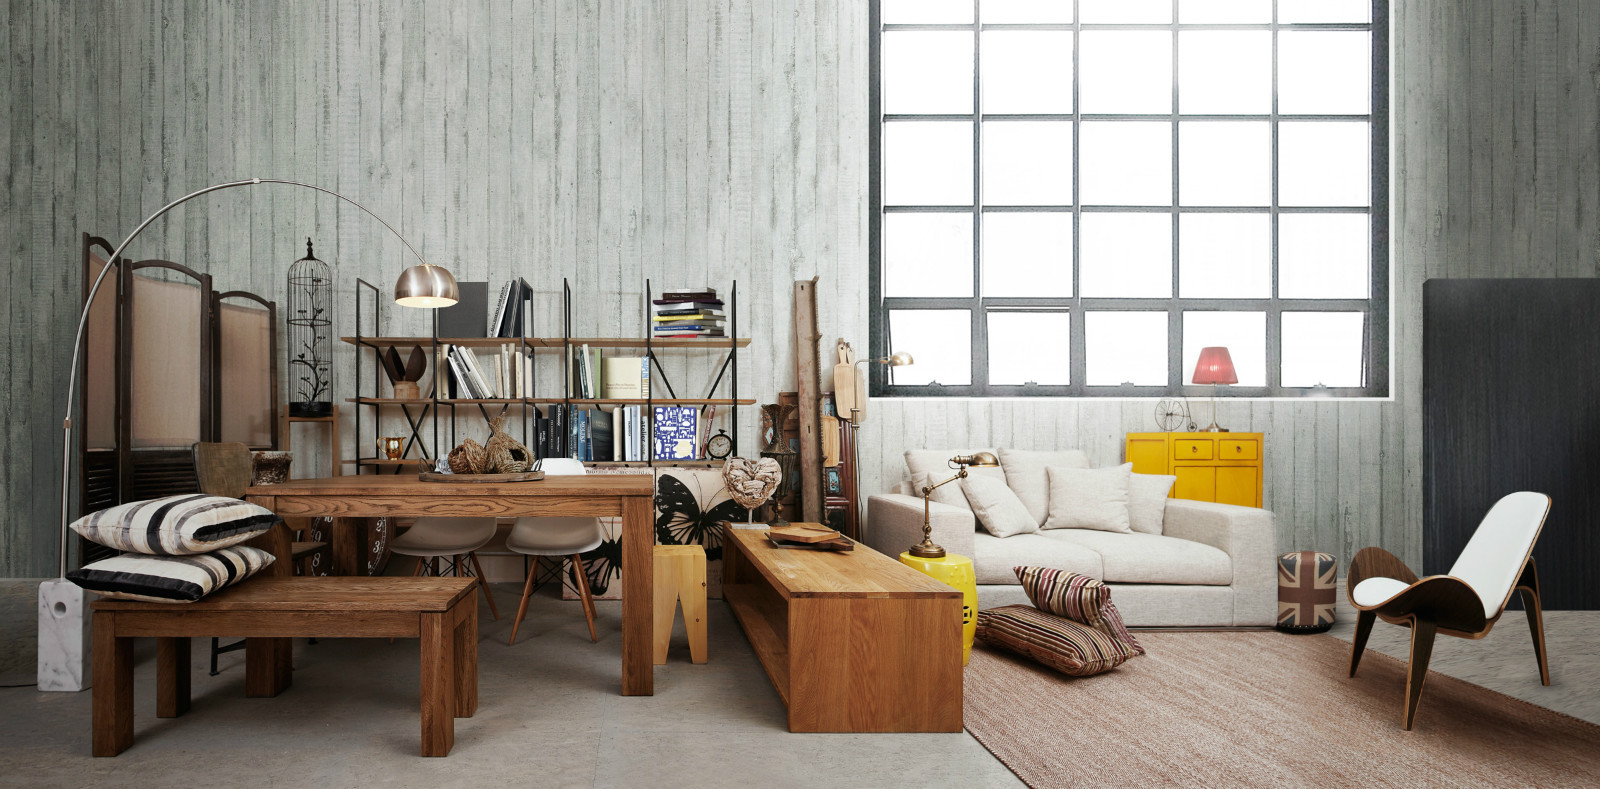 furniture hong kong le corbusier lc  petit comfort decor  - where to buy modern furniture at outlet price httpgoo